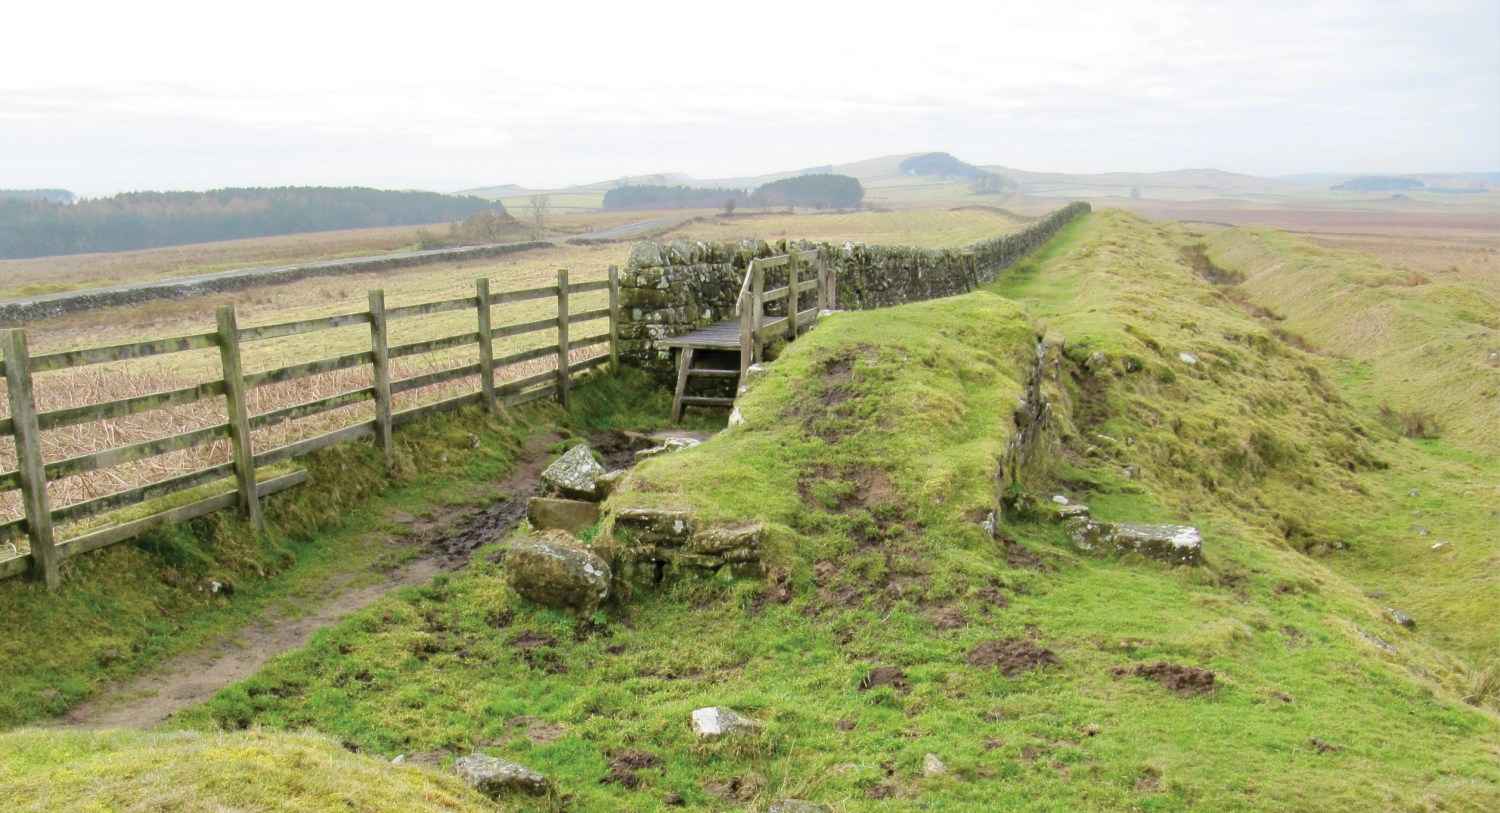 above A muddy 'pinch point' on the National Trail, within Milecastle 33, at the end of winter. The bridge carries the path over the side wall of the milecastle.